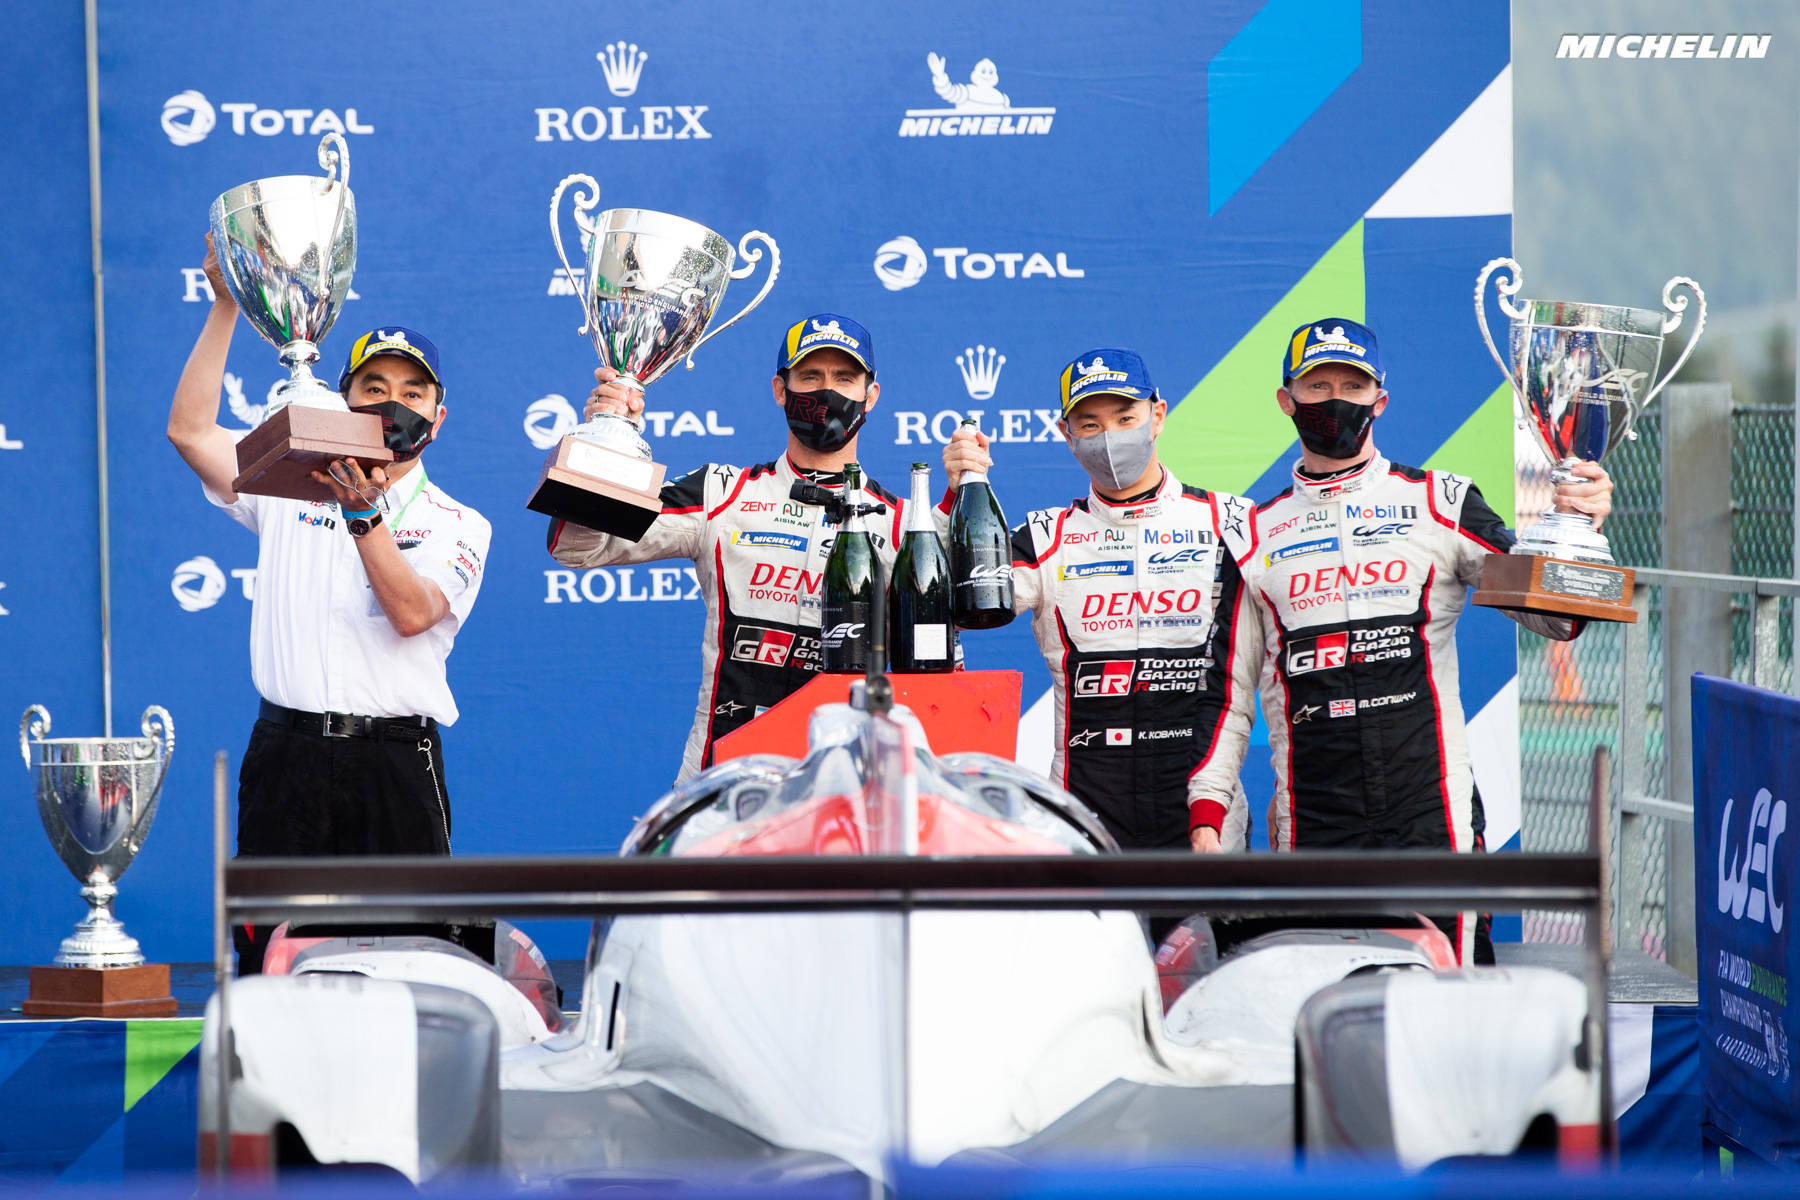 Toyota and Michelin finish 1st and 2nd at Spa-Francorchamps